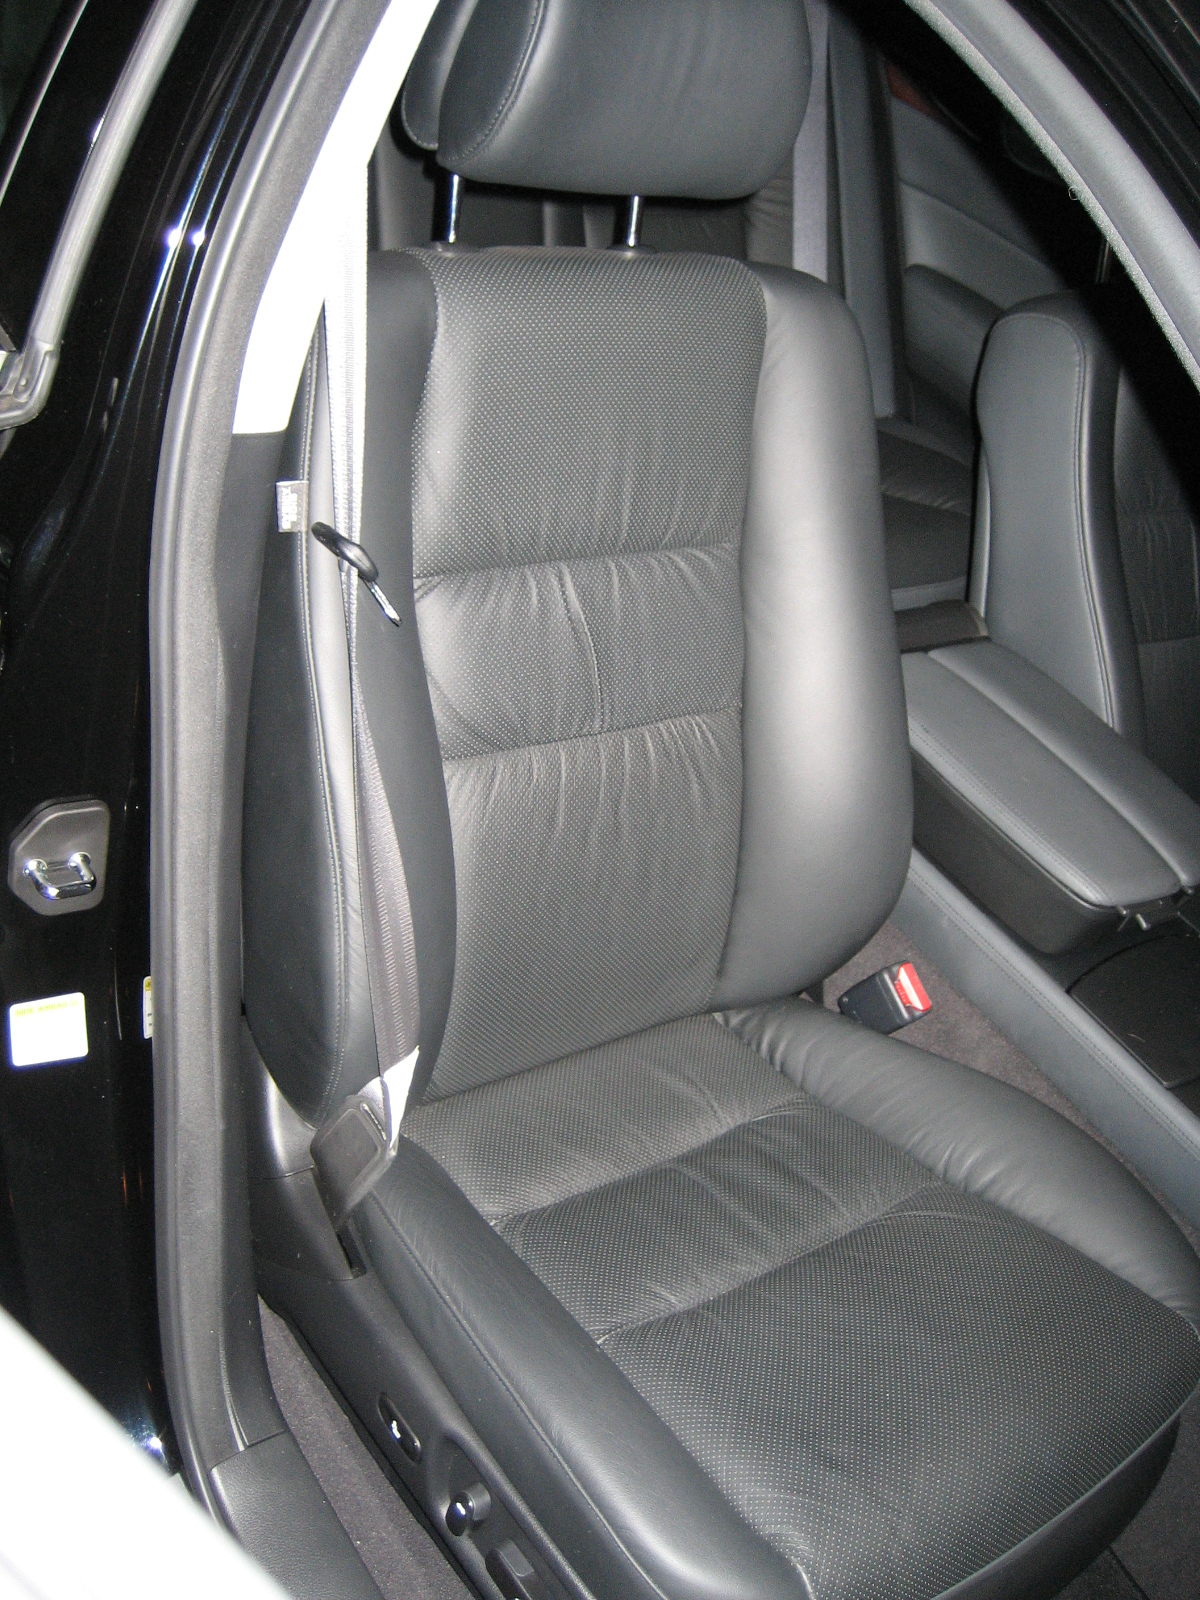 What Happens To Leather Car Seats Without Covers?